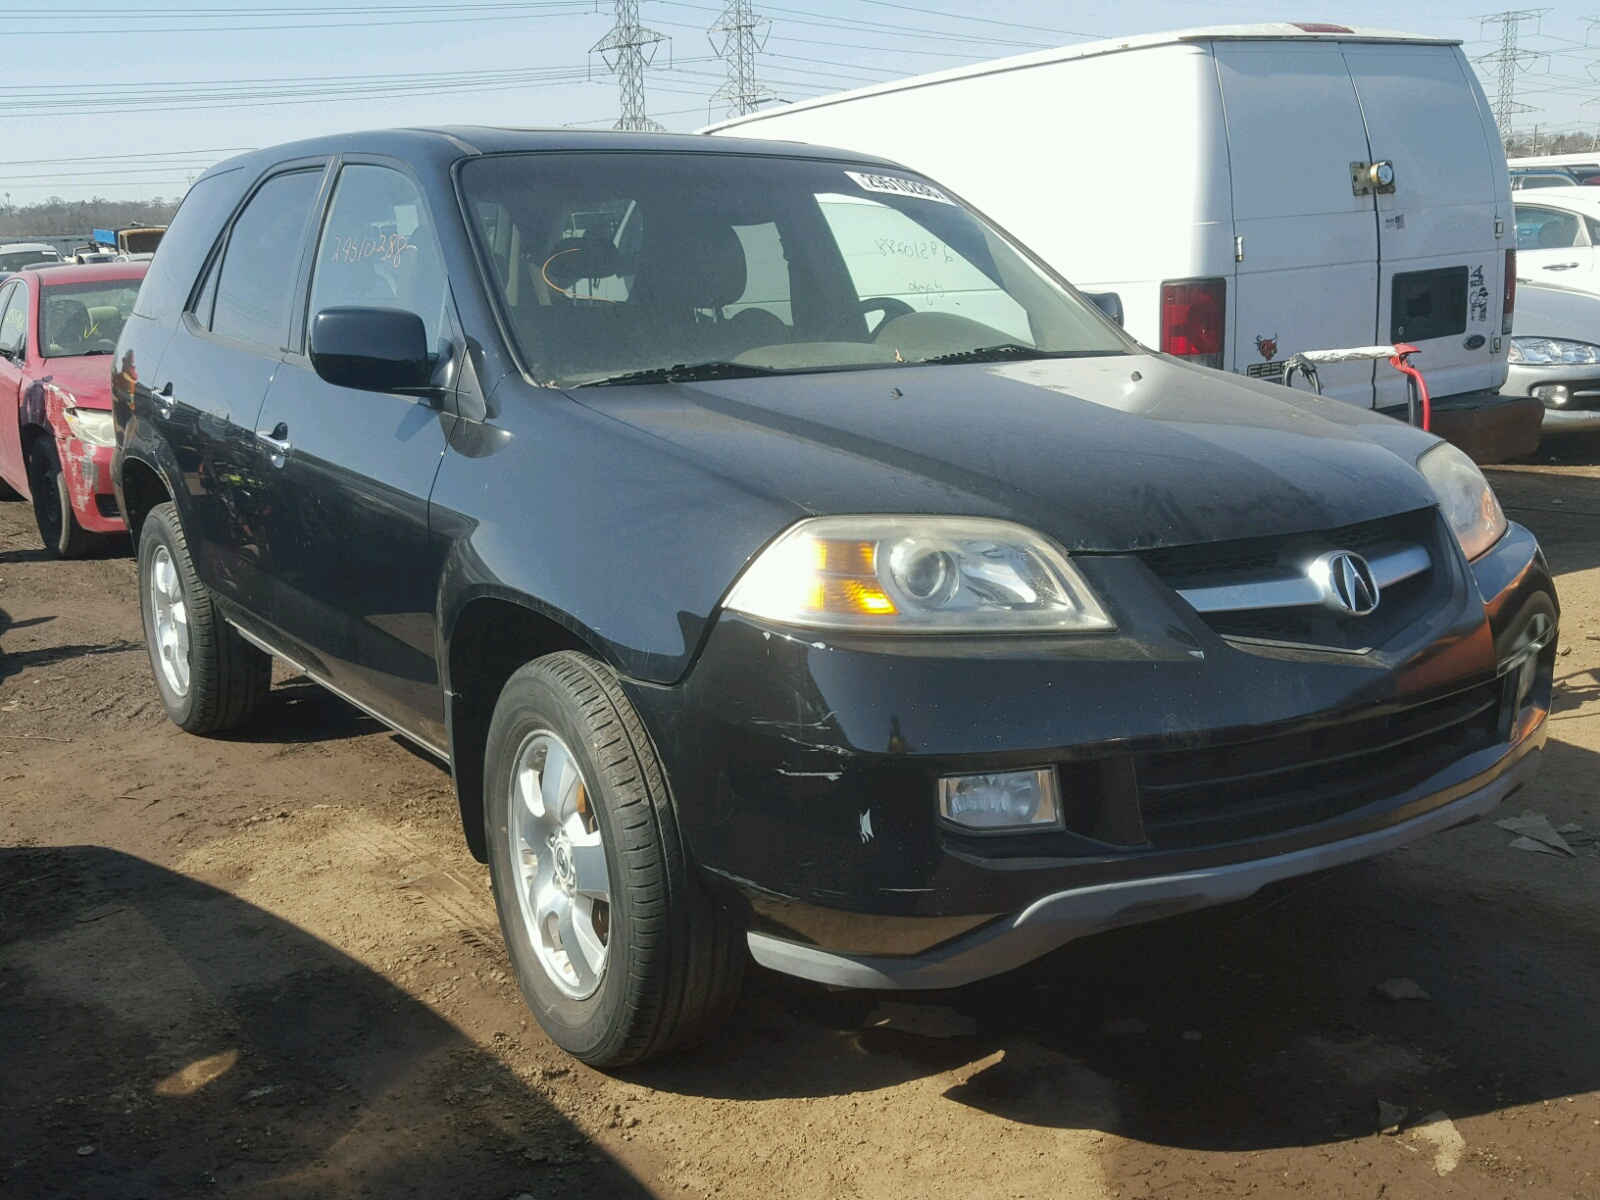 sale in pines fl vehicles mdx htm used for featured pembroke acura of